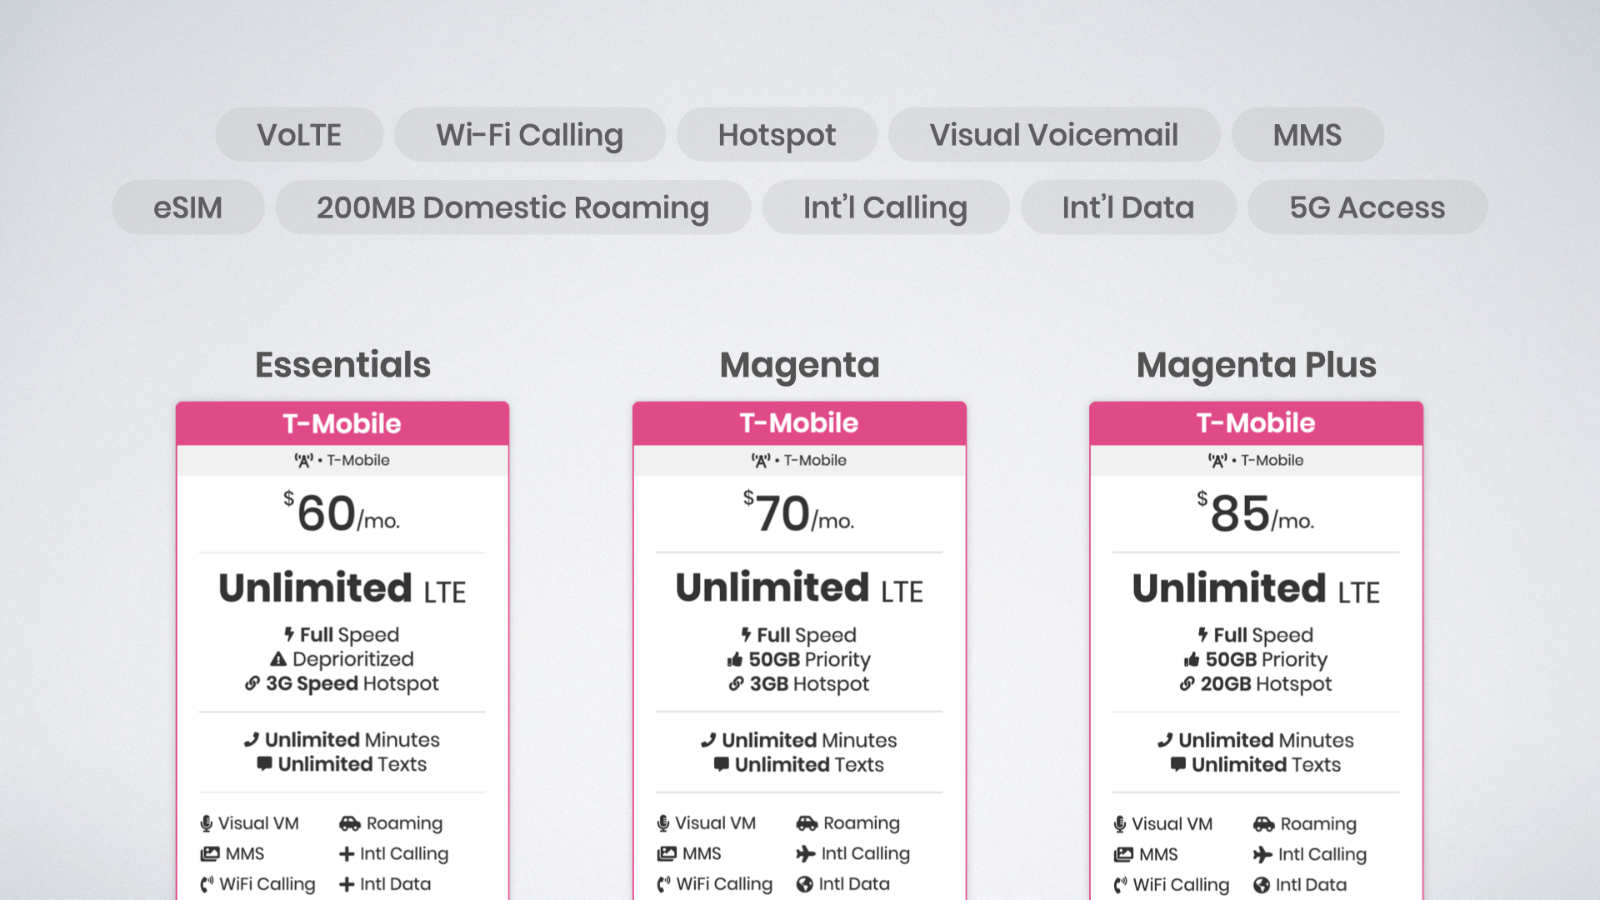 T-Mobile supports all the features you'd expect from a major network operator